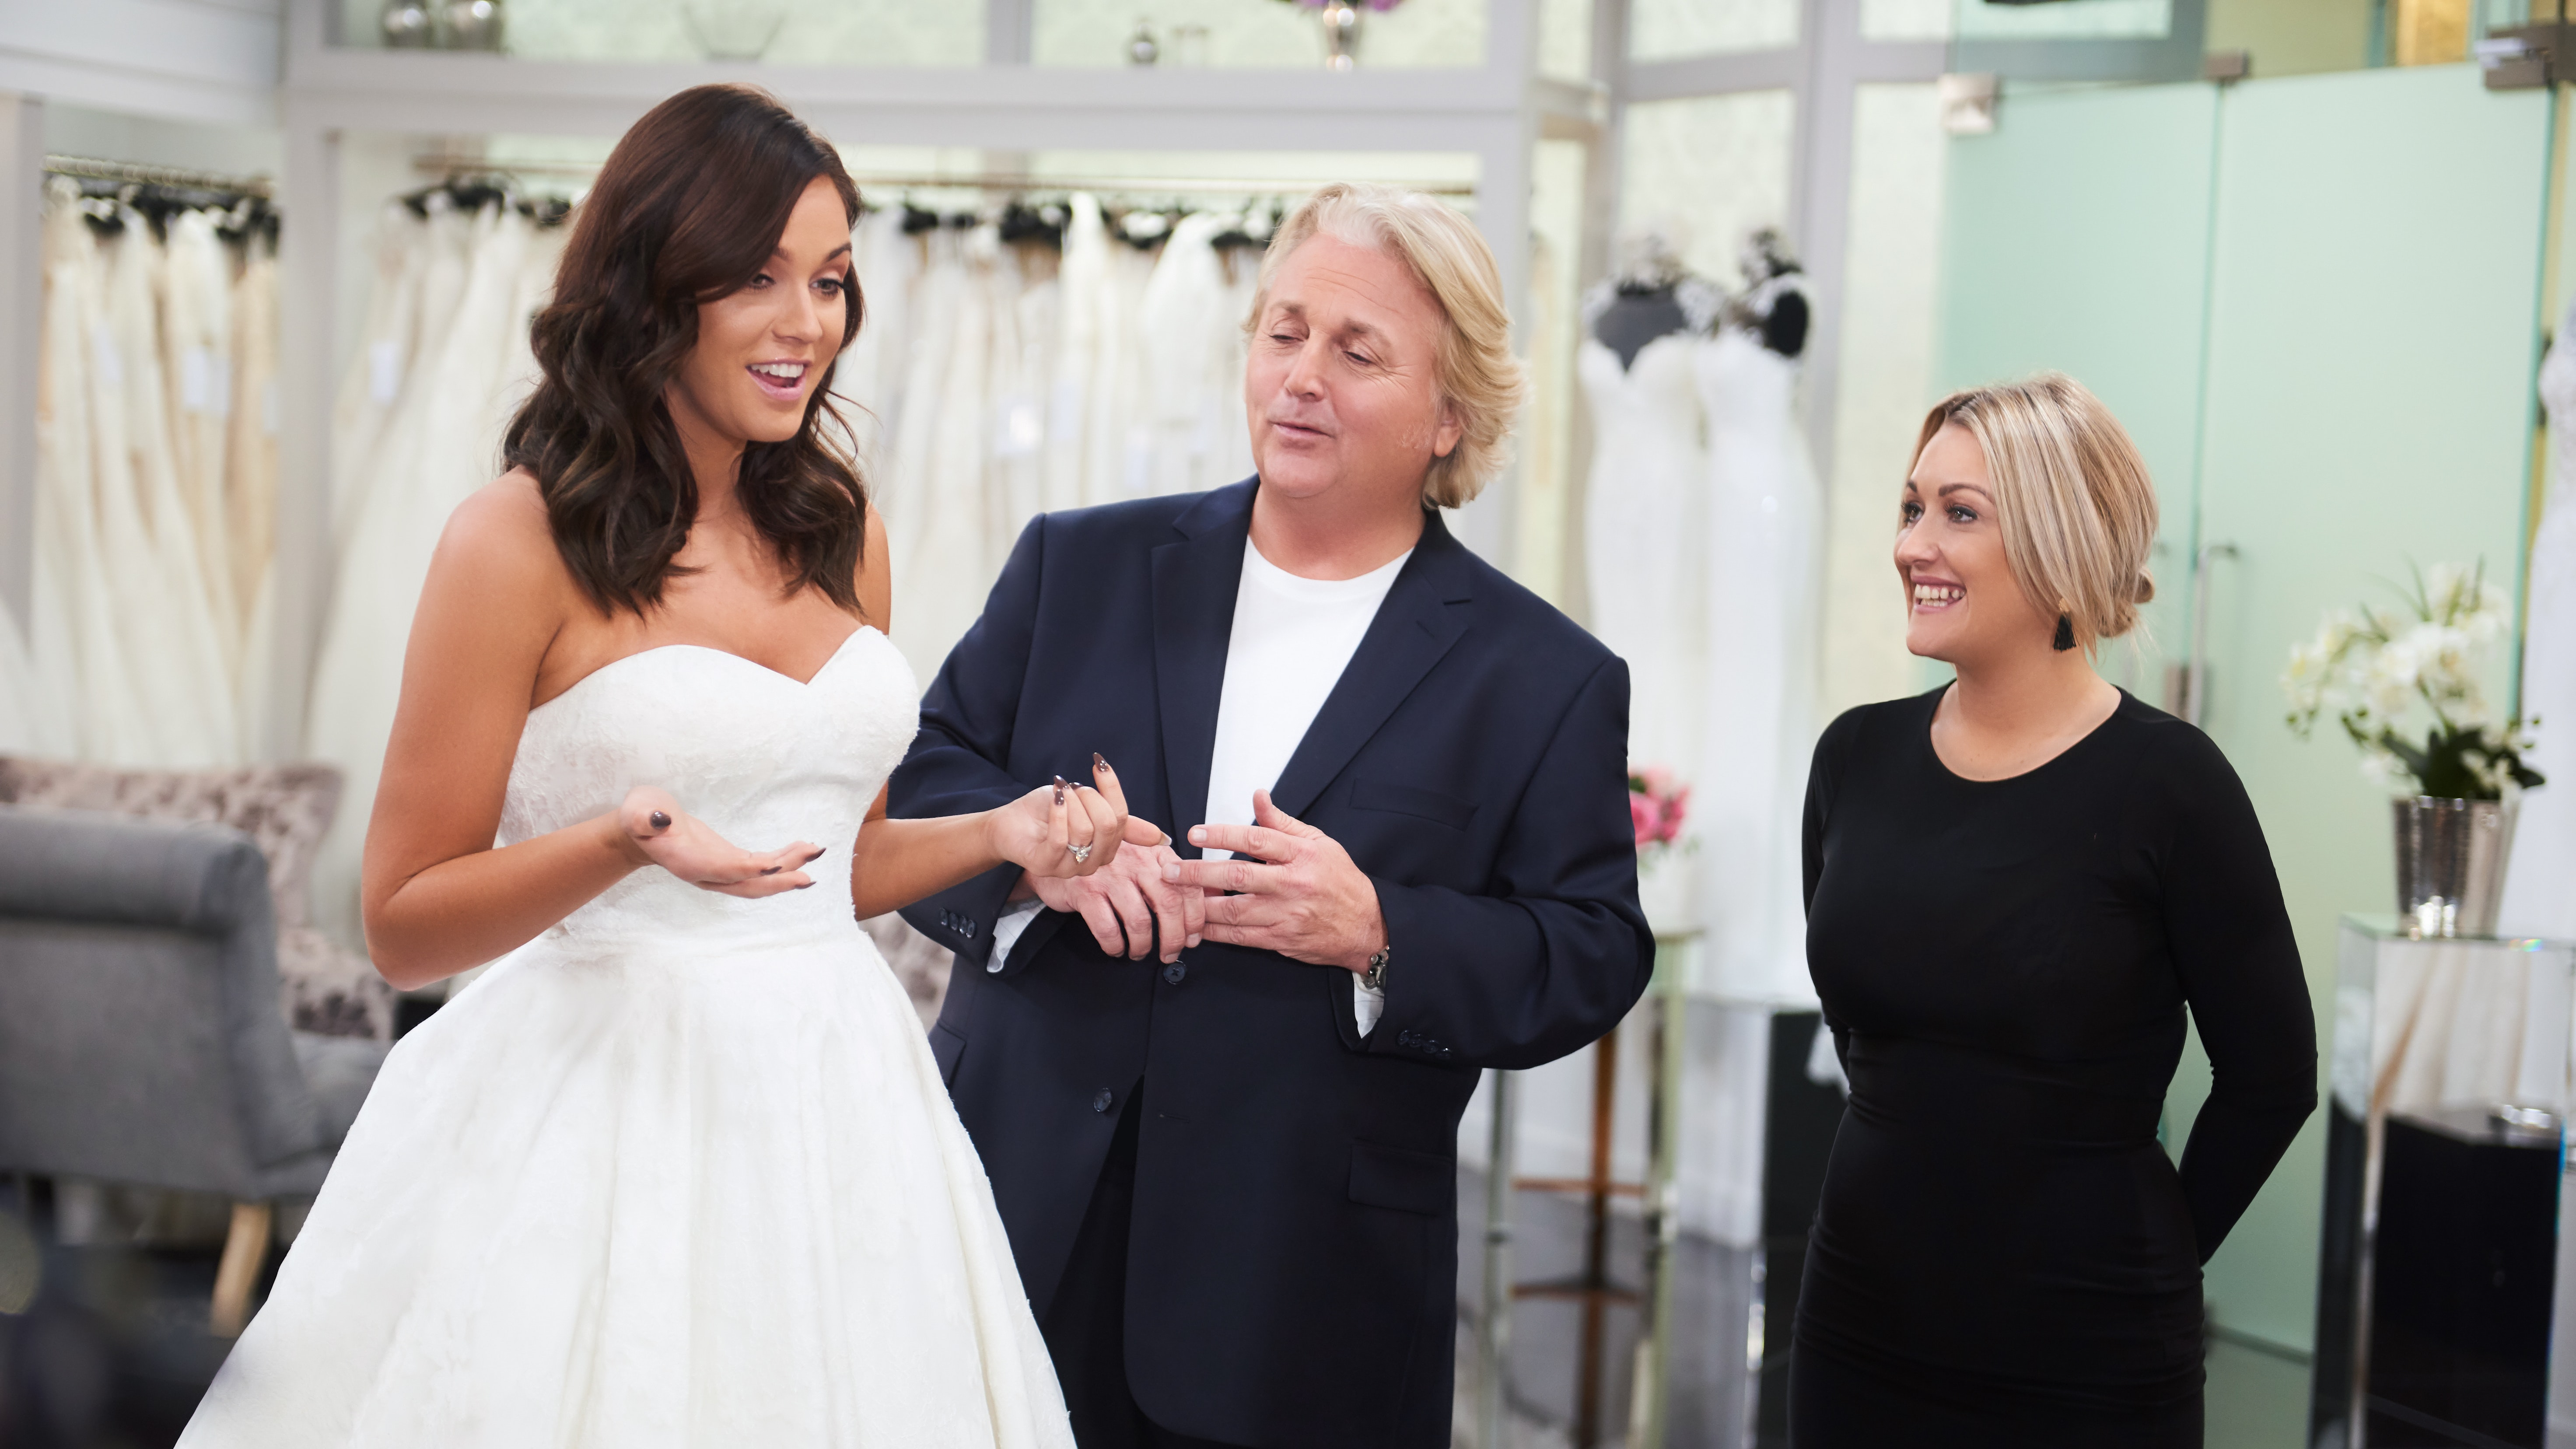 Vicky Pattison Discovers What Is Too Sexy While Wedding Dress